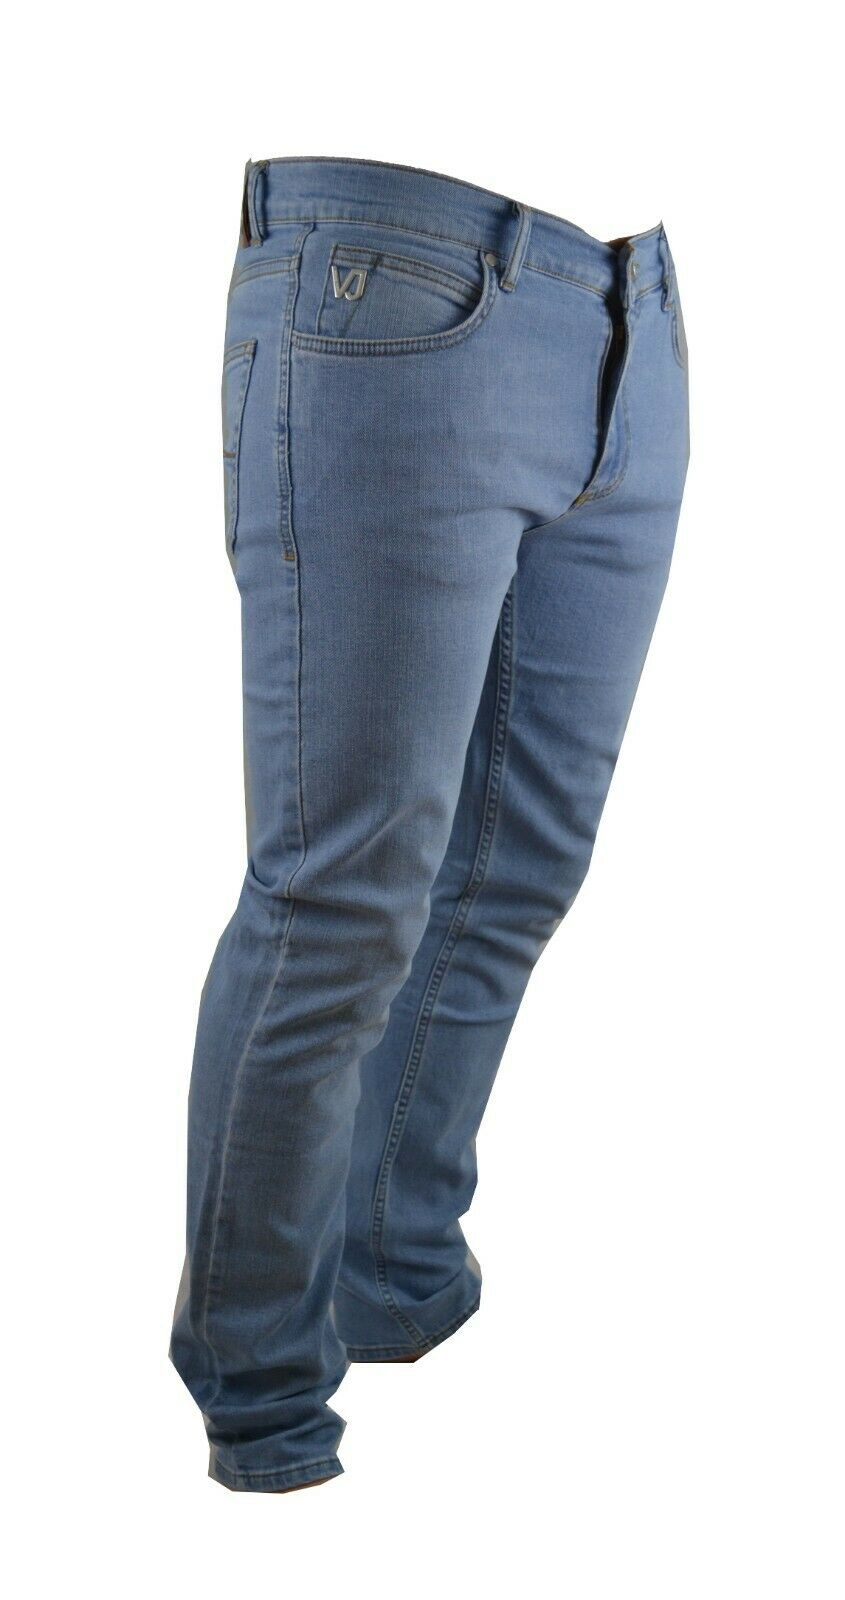 BNWT VERSACE JEANS STRETCH LIGHT Blau COMFORT STRETCH SLIM SLIM SLIM FIT METAL VJ LOGO 276790